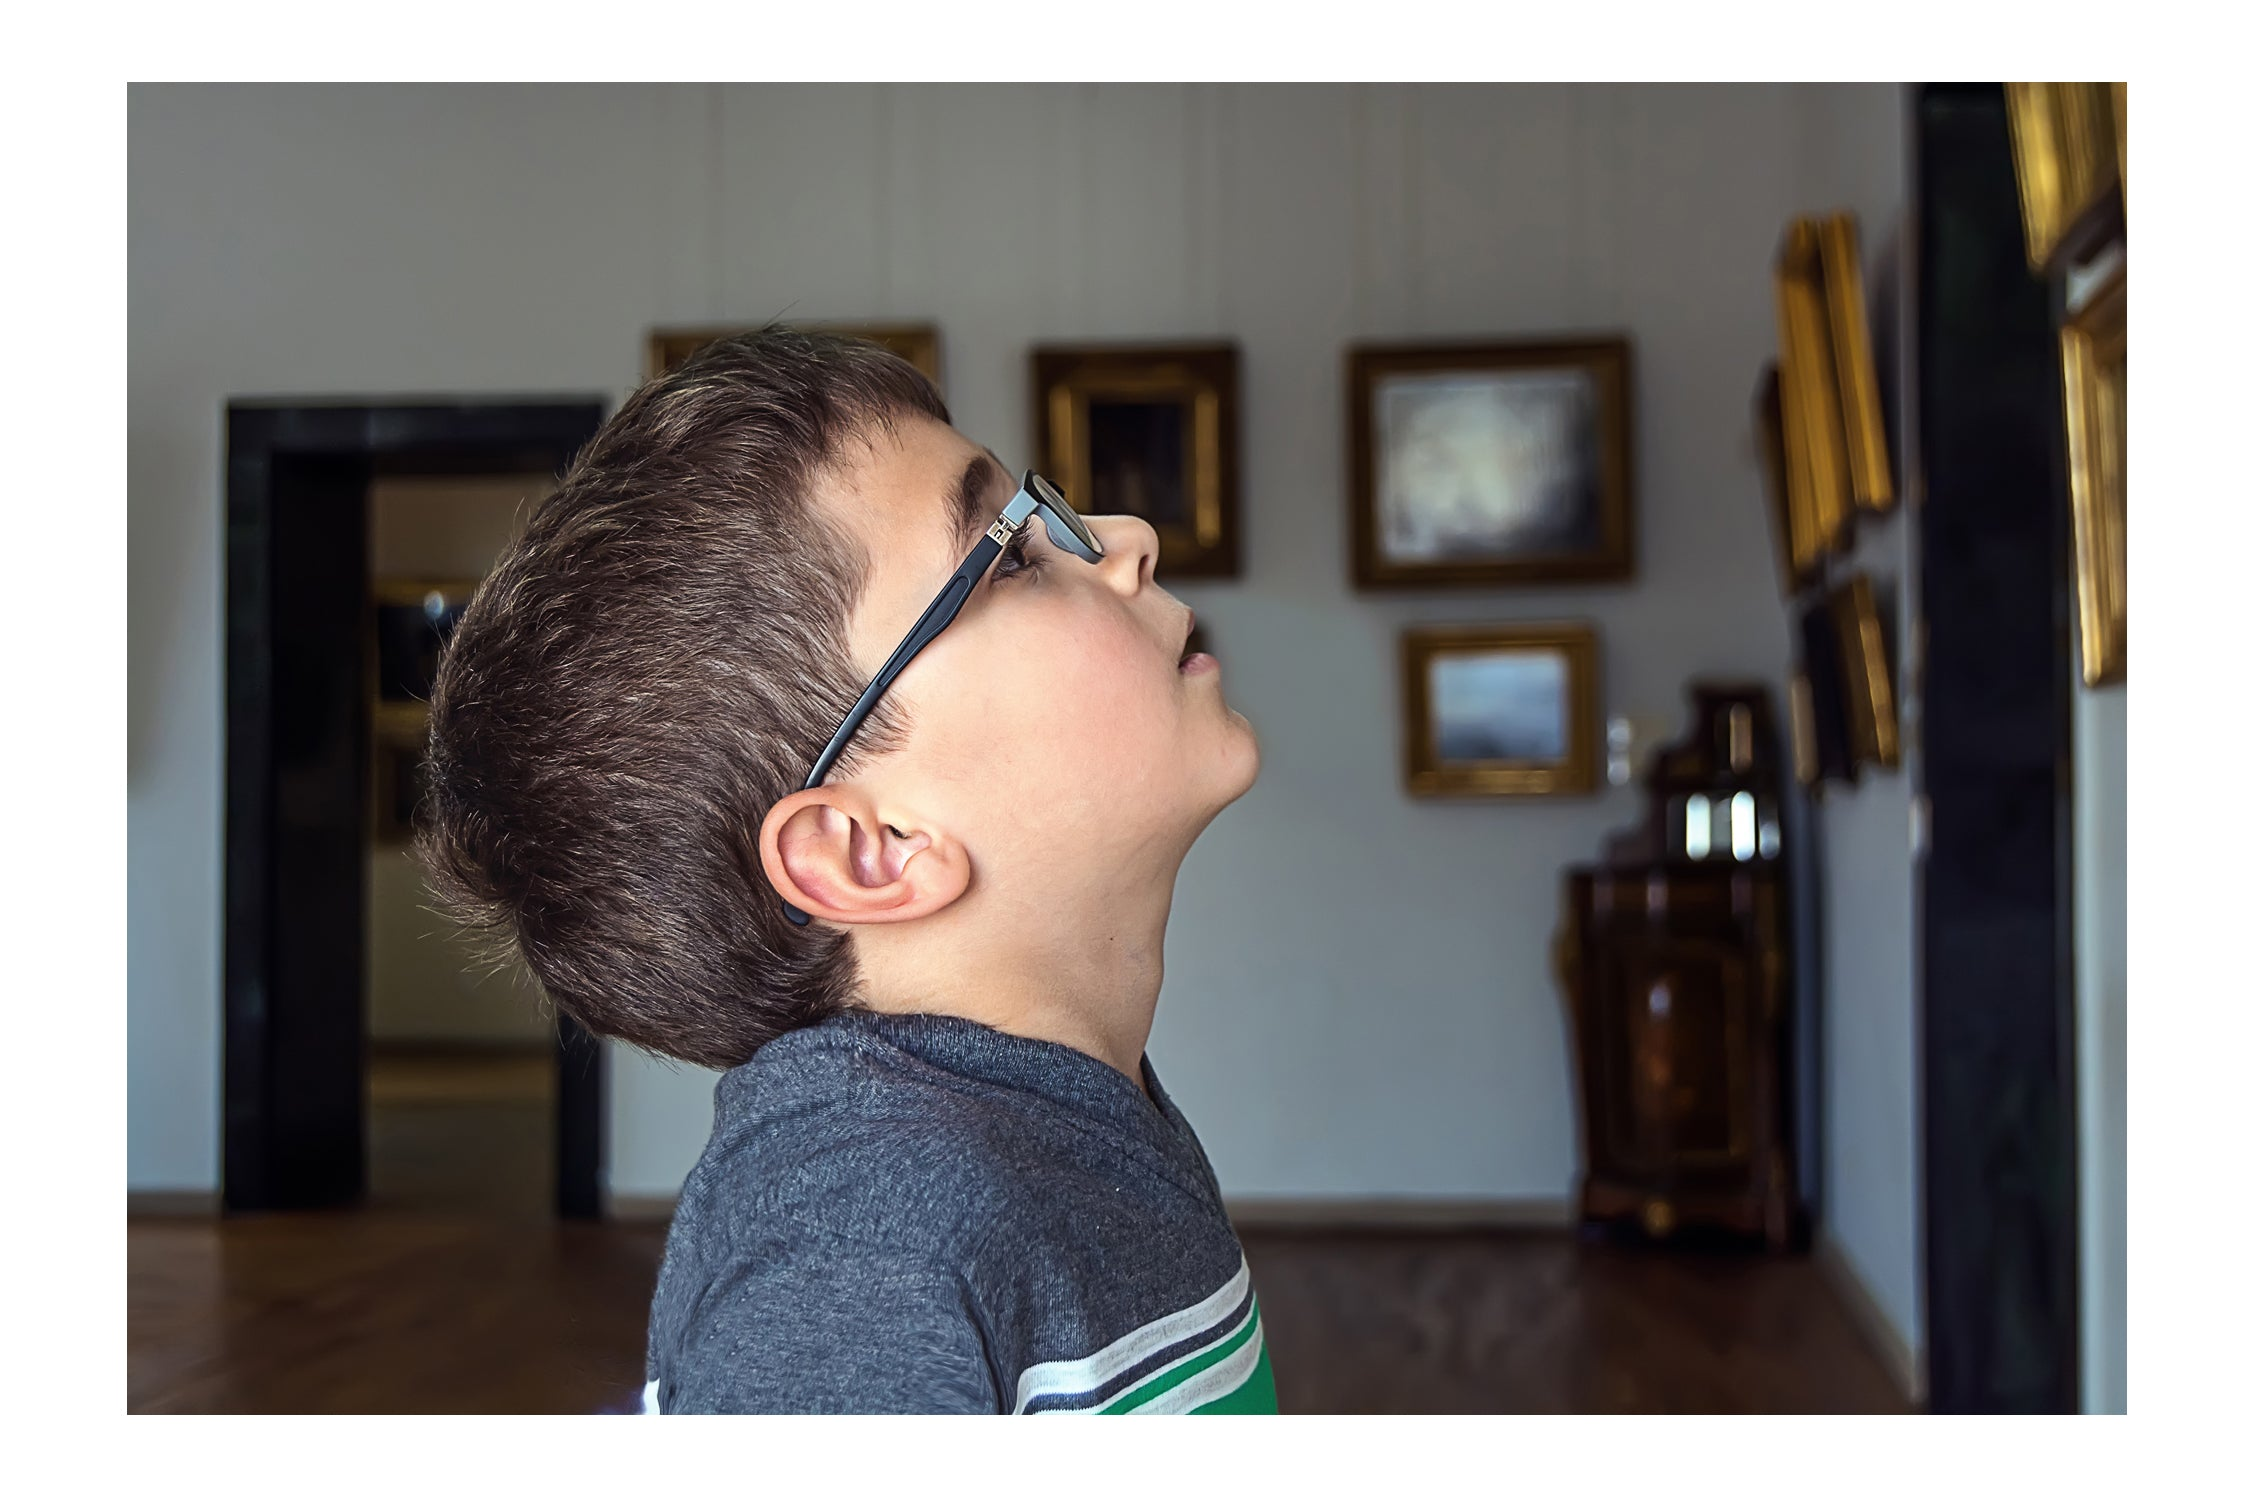 Boy looking at artwork with a curious expression on his face